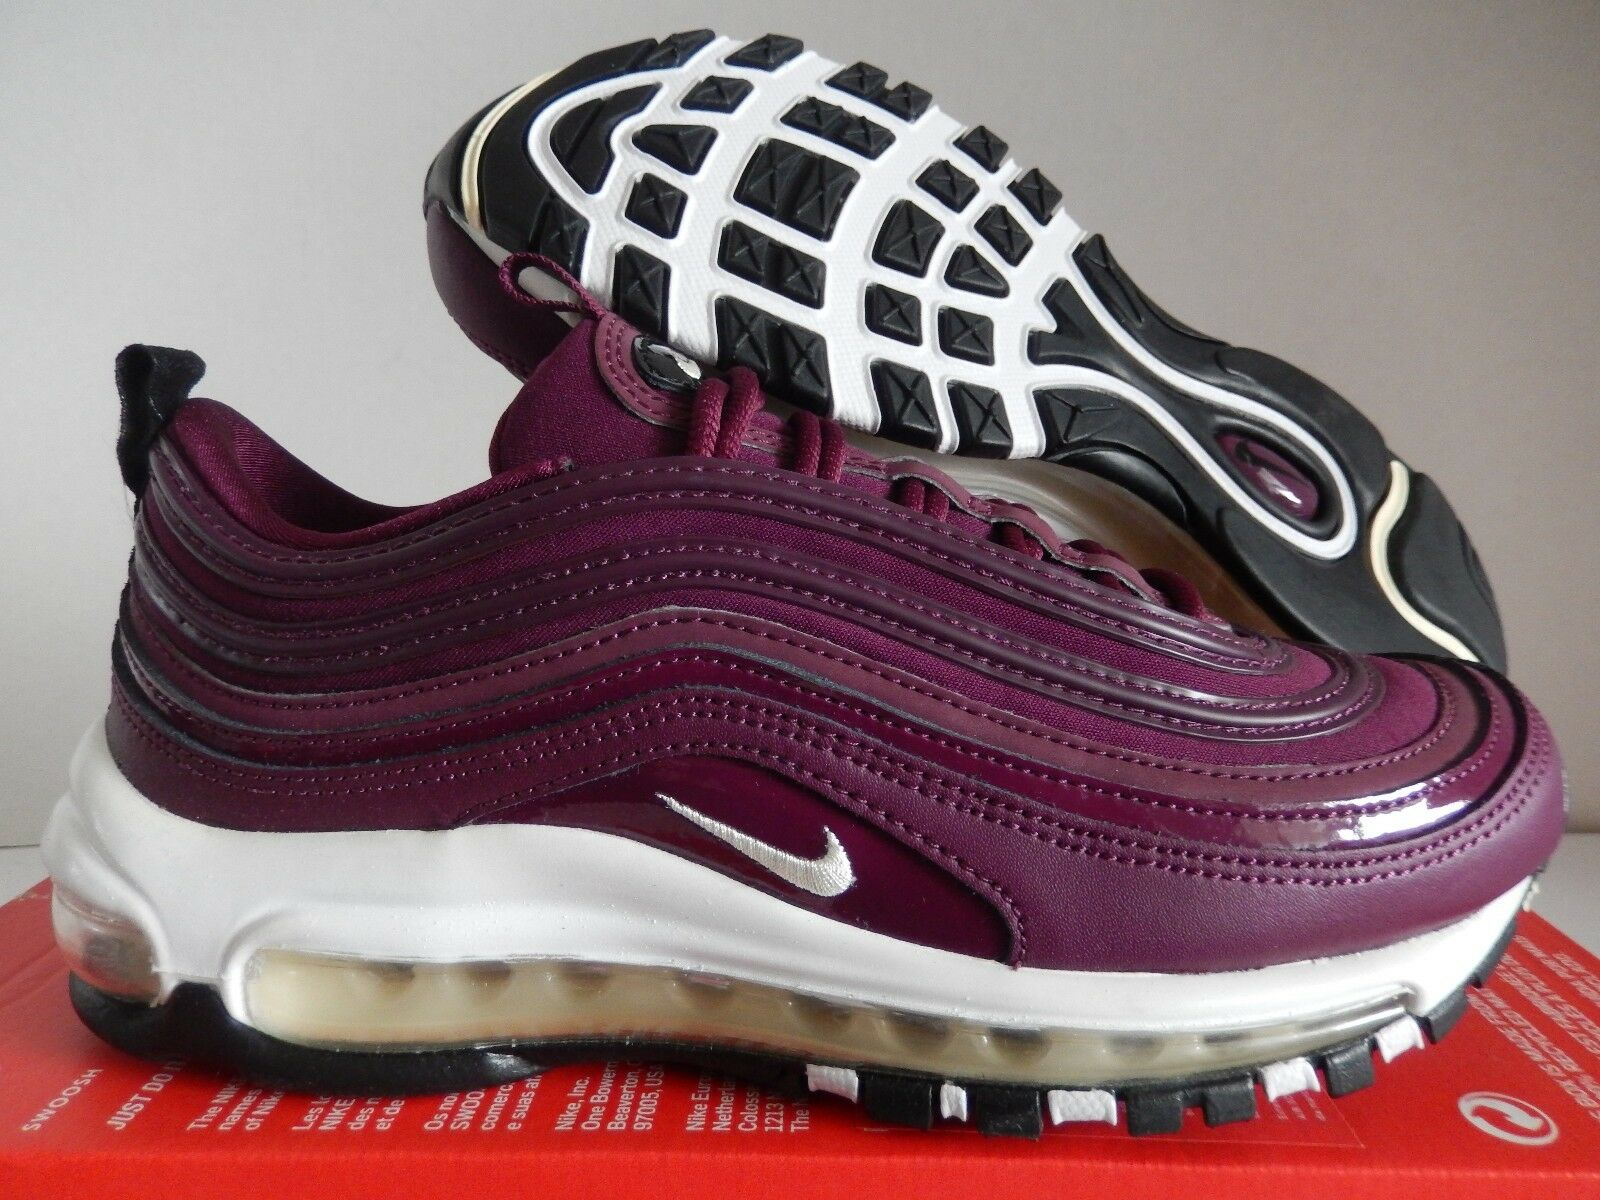 WMNS NIKE AIR MAX 97 PREMIUM BORDEAUX-MUSLIN-BLACK Price reduction